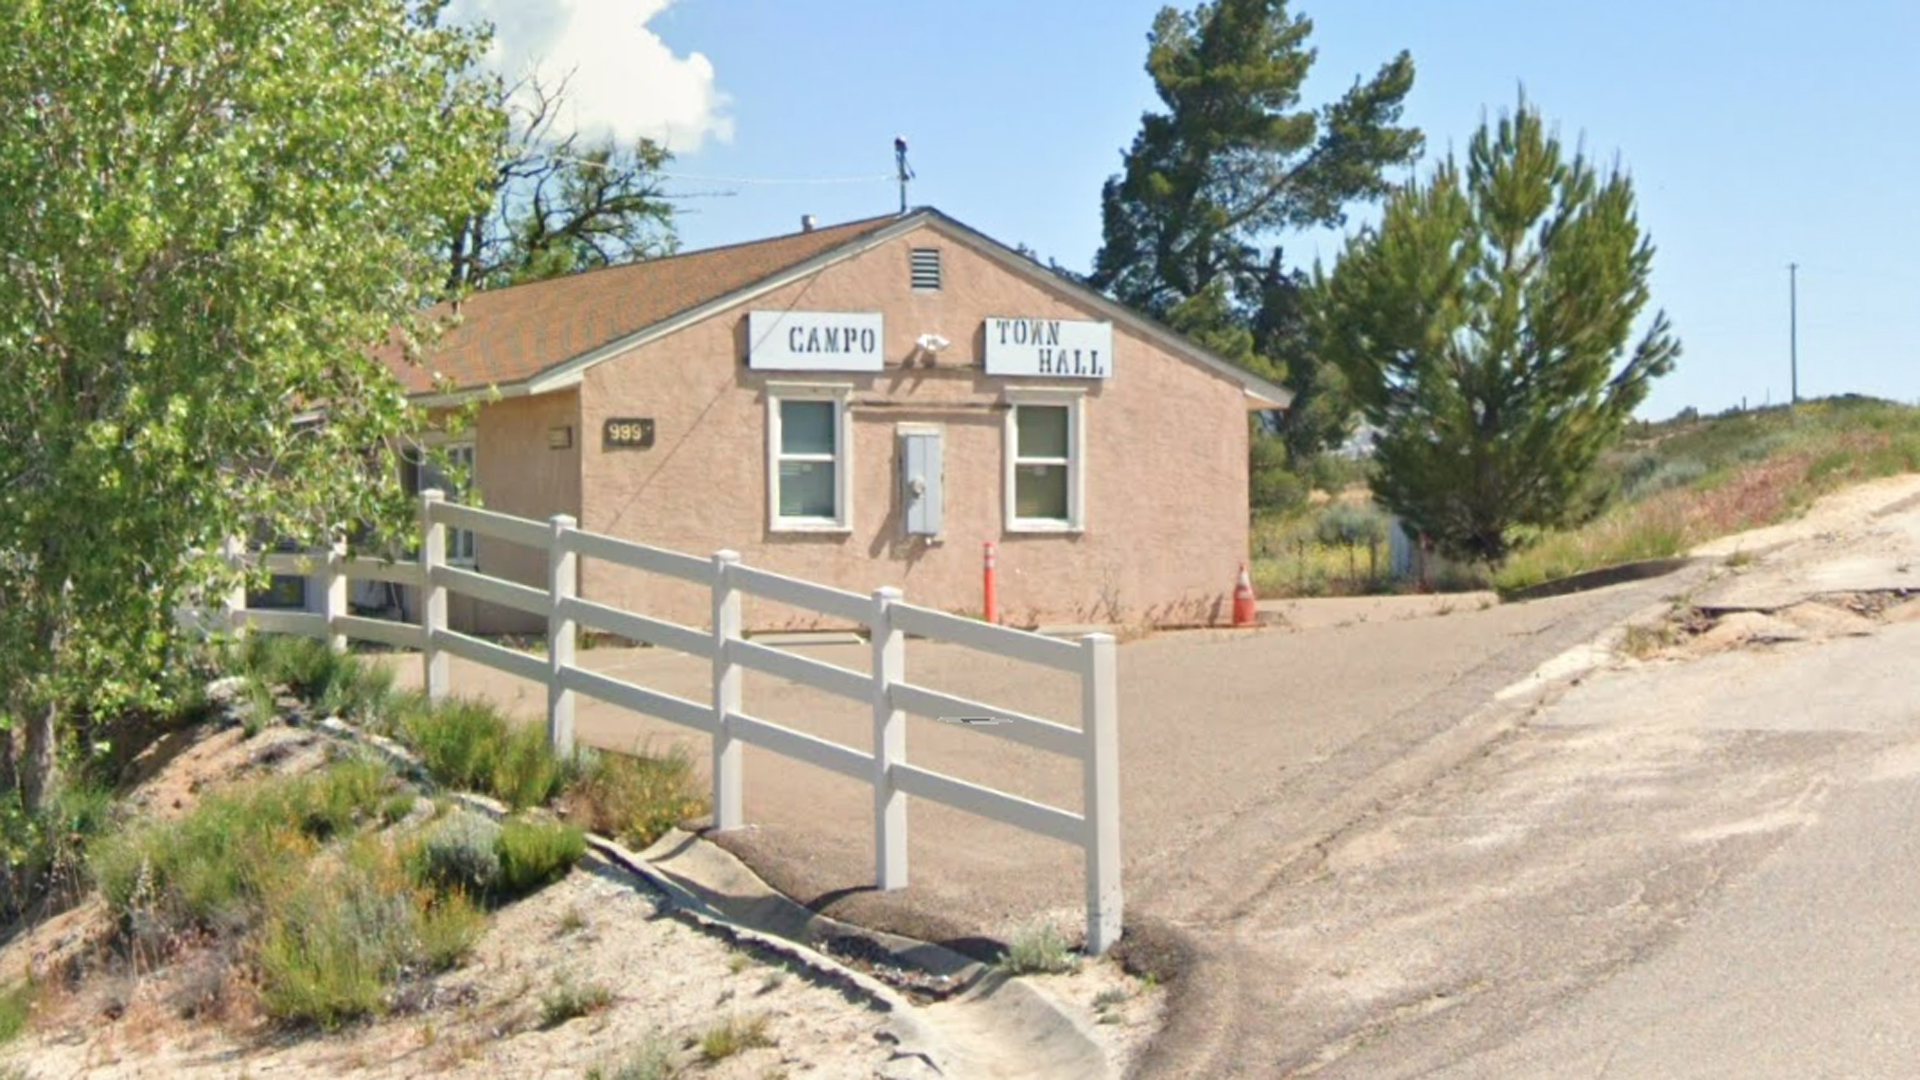 Campo Town Hall is seen in a Google Maps image.